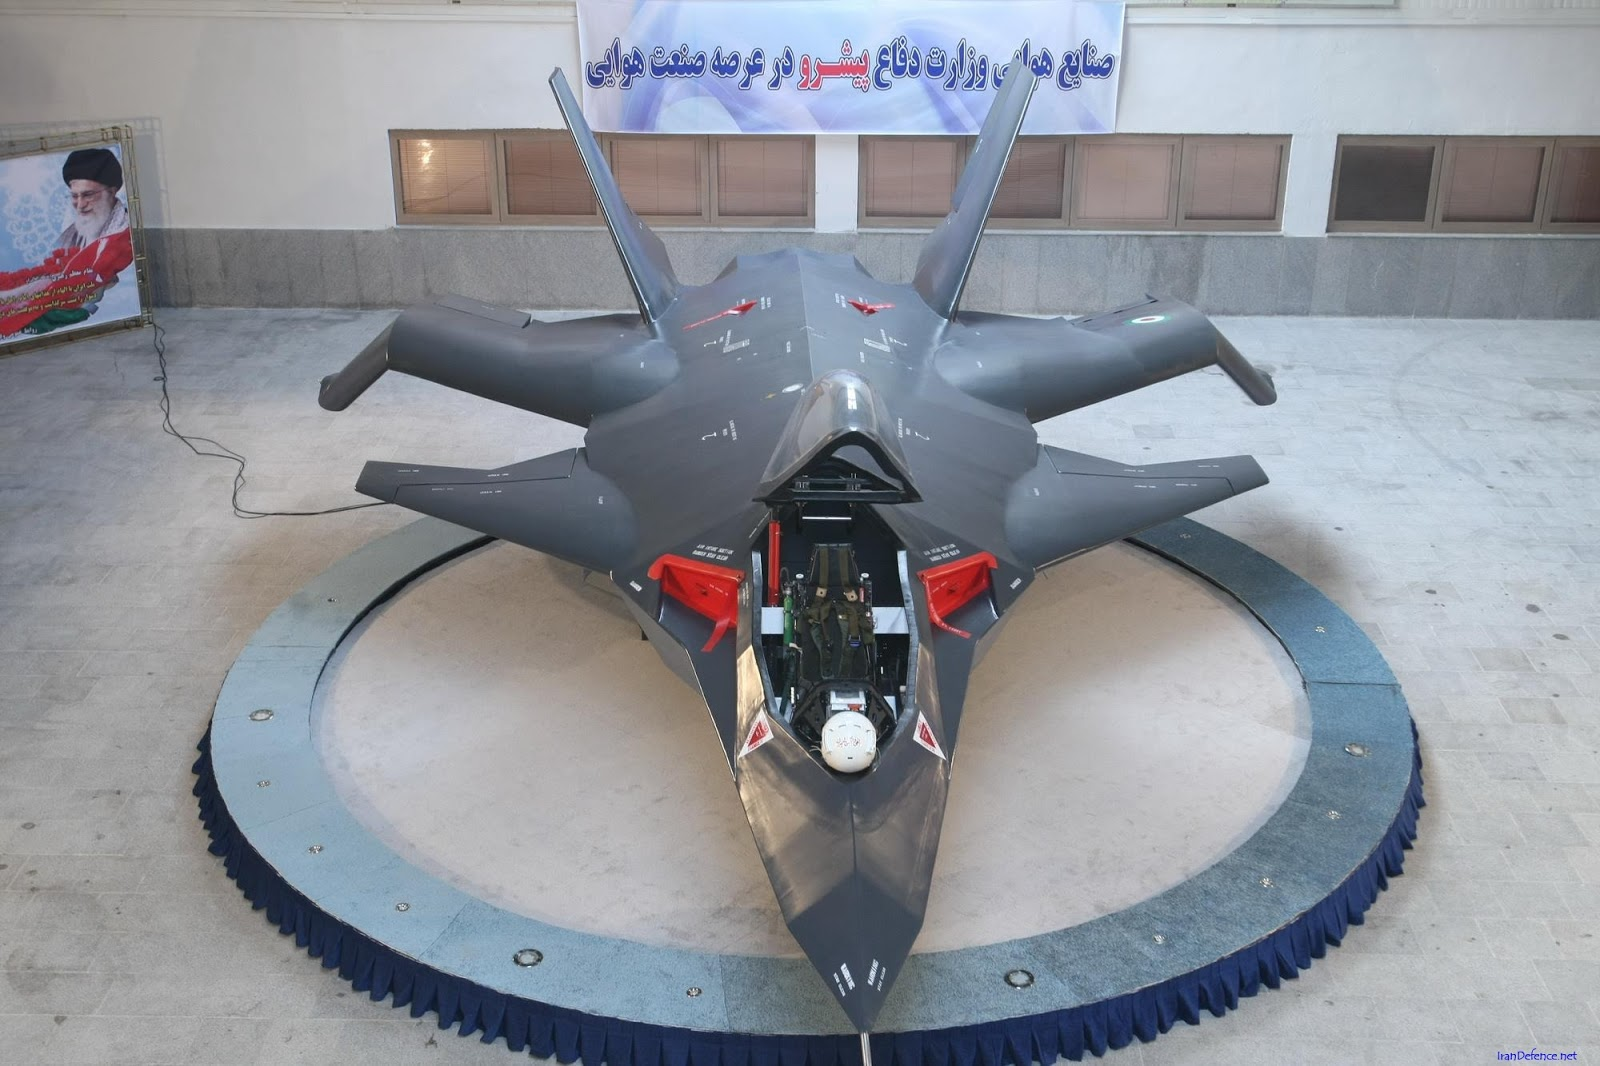 Iranian qaher f-313 stealth fighter jet prototype/mock up